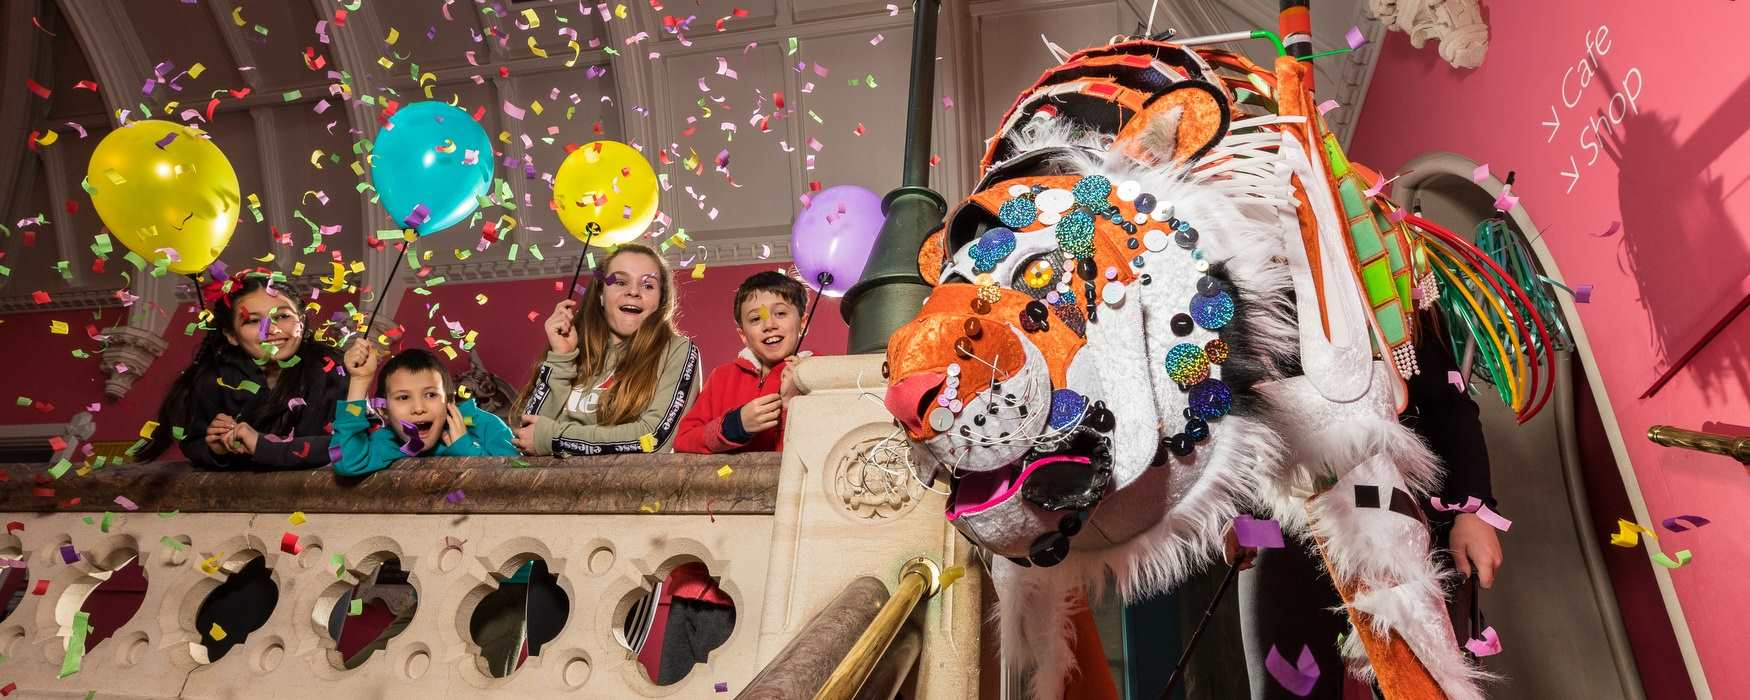 Carnival of the Animals - 150th Anniversary Celebrations